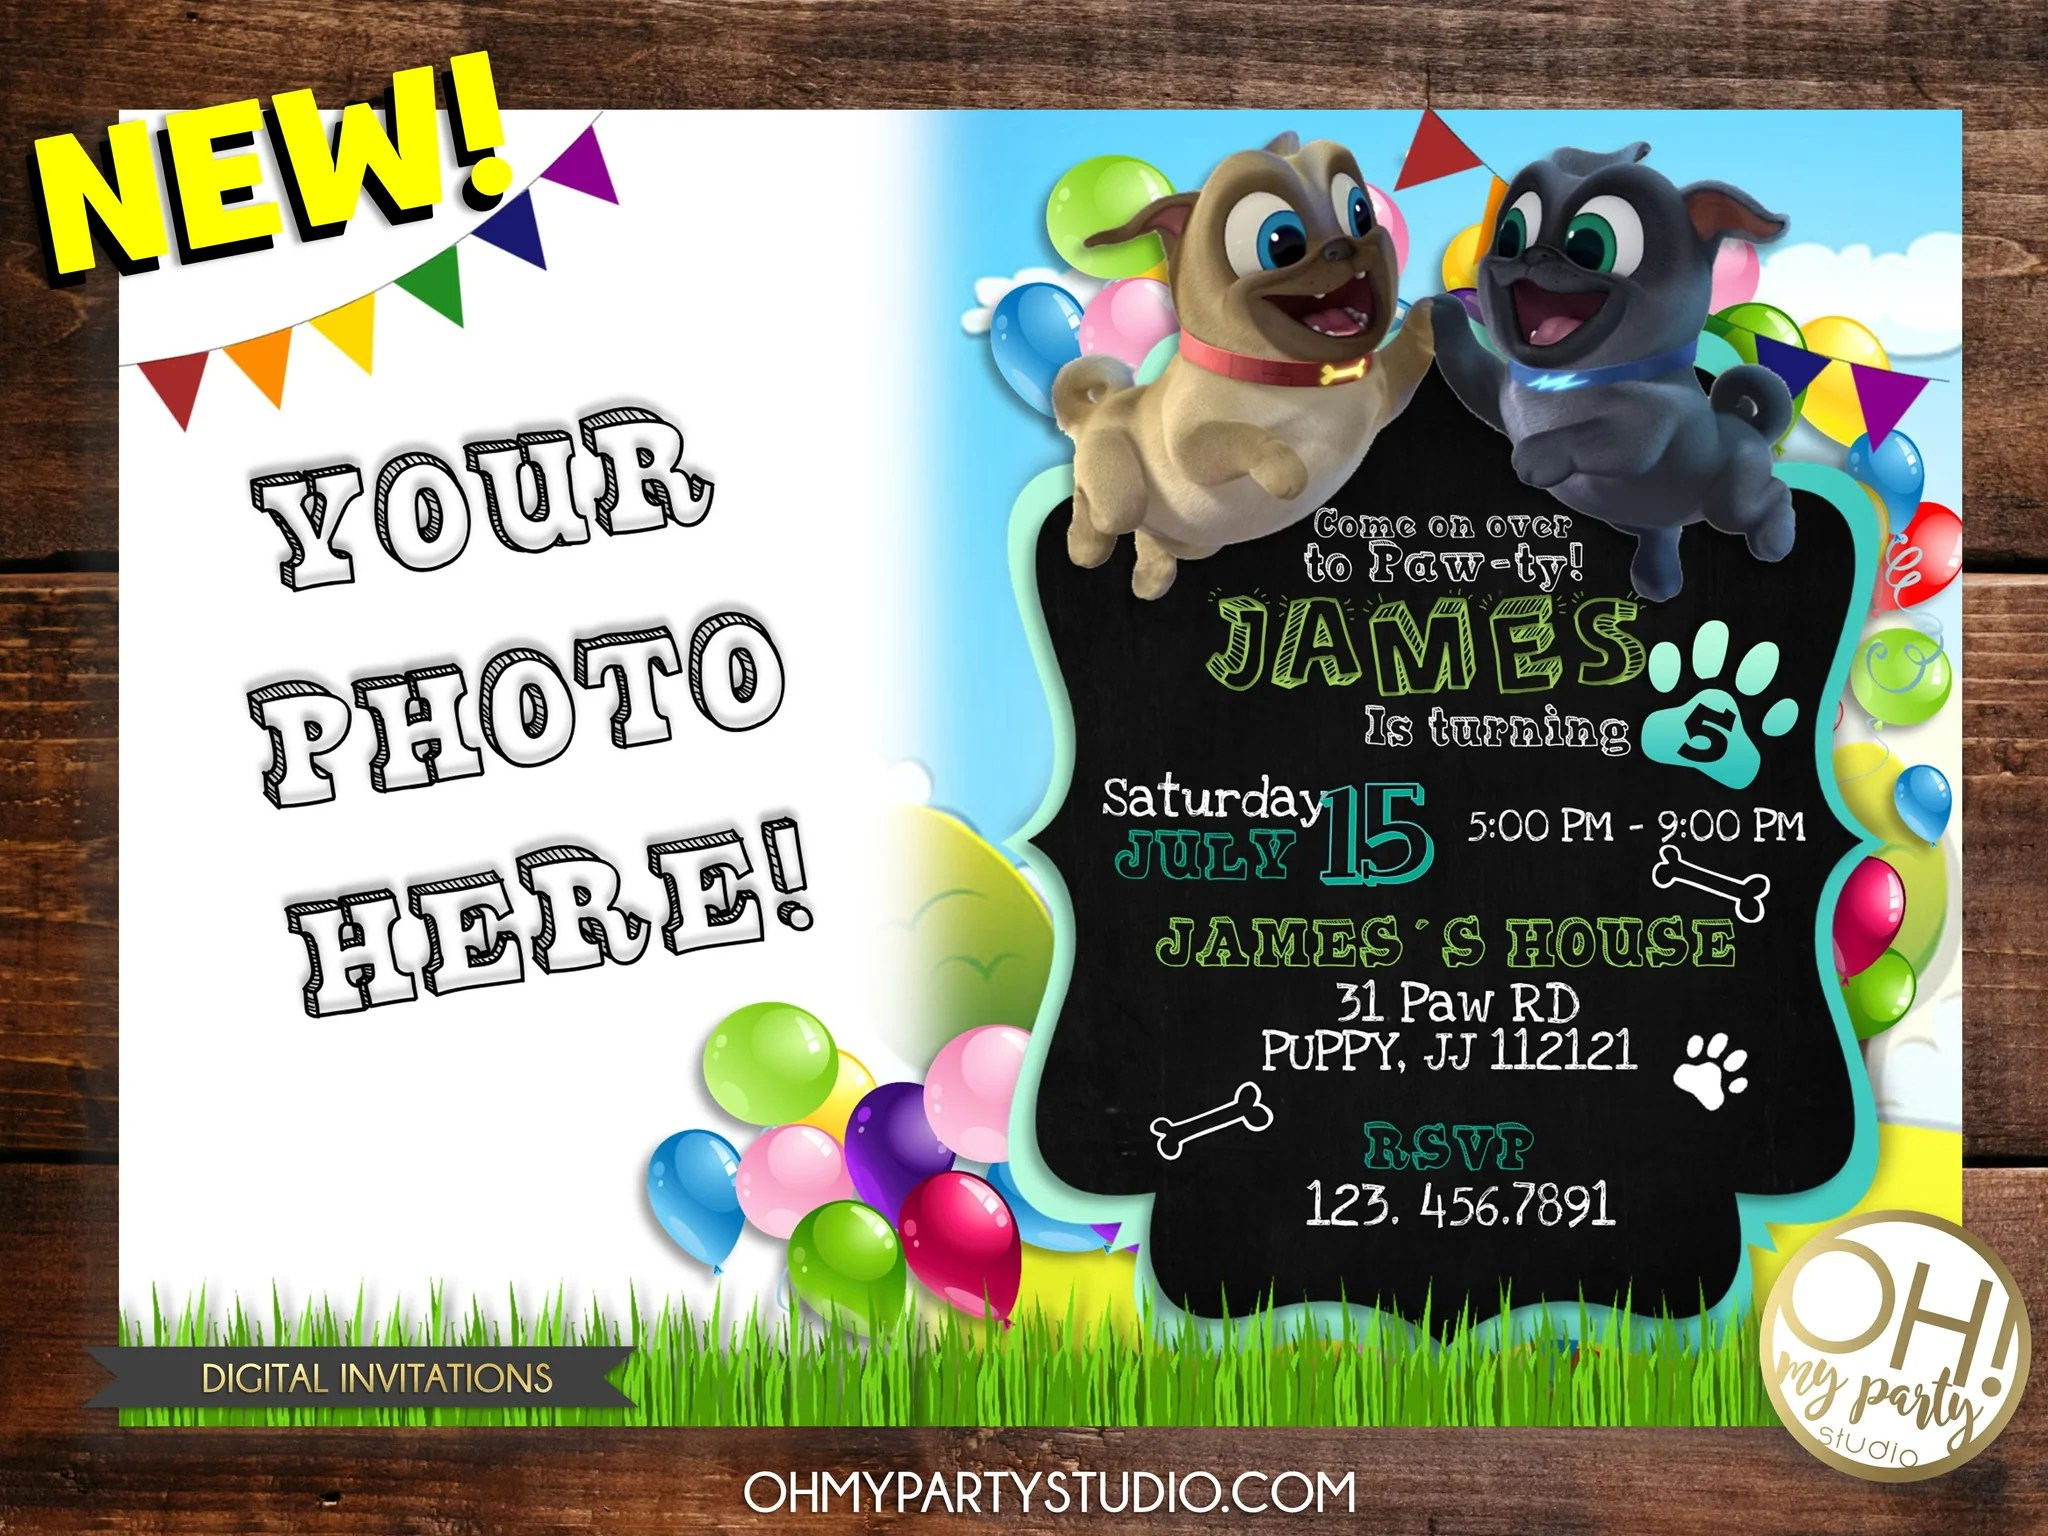 puppy dogs pals birthday party invitation with photo